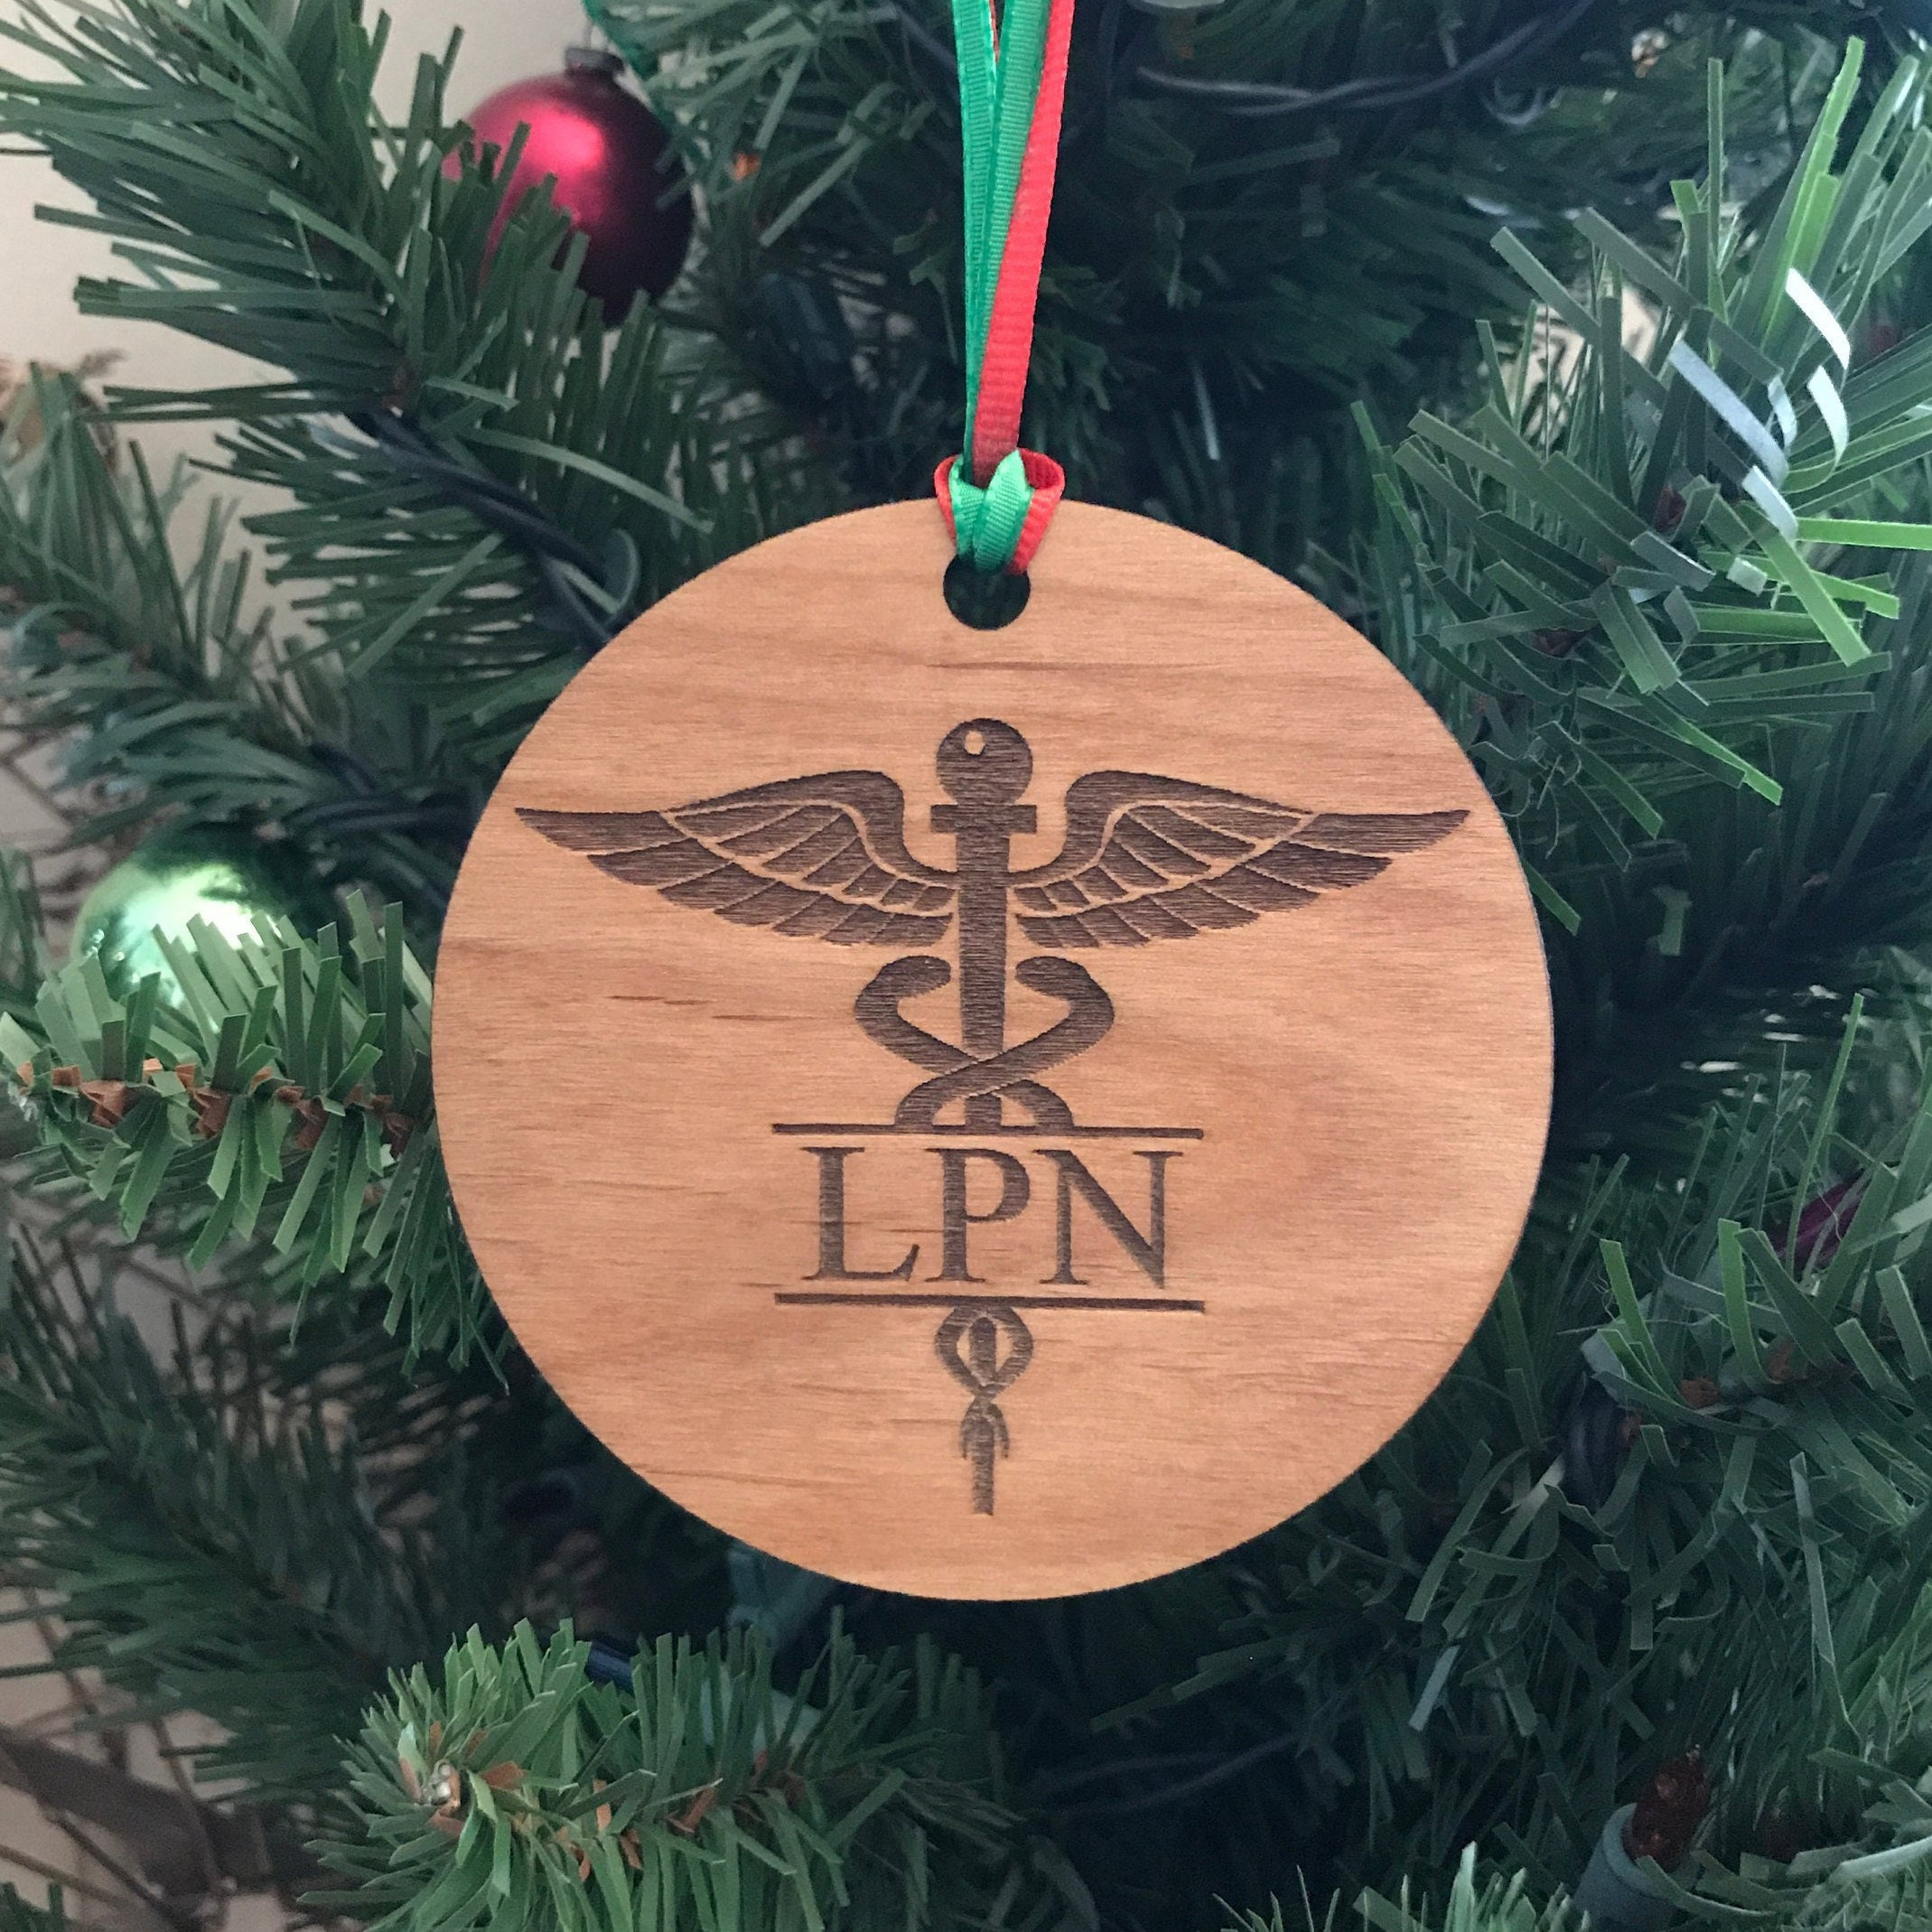 LPN Ornament Nurse Christmas Gifts Nursing Ornaments LPN | Etsy